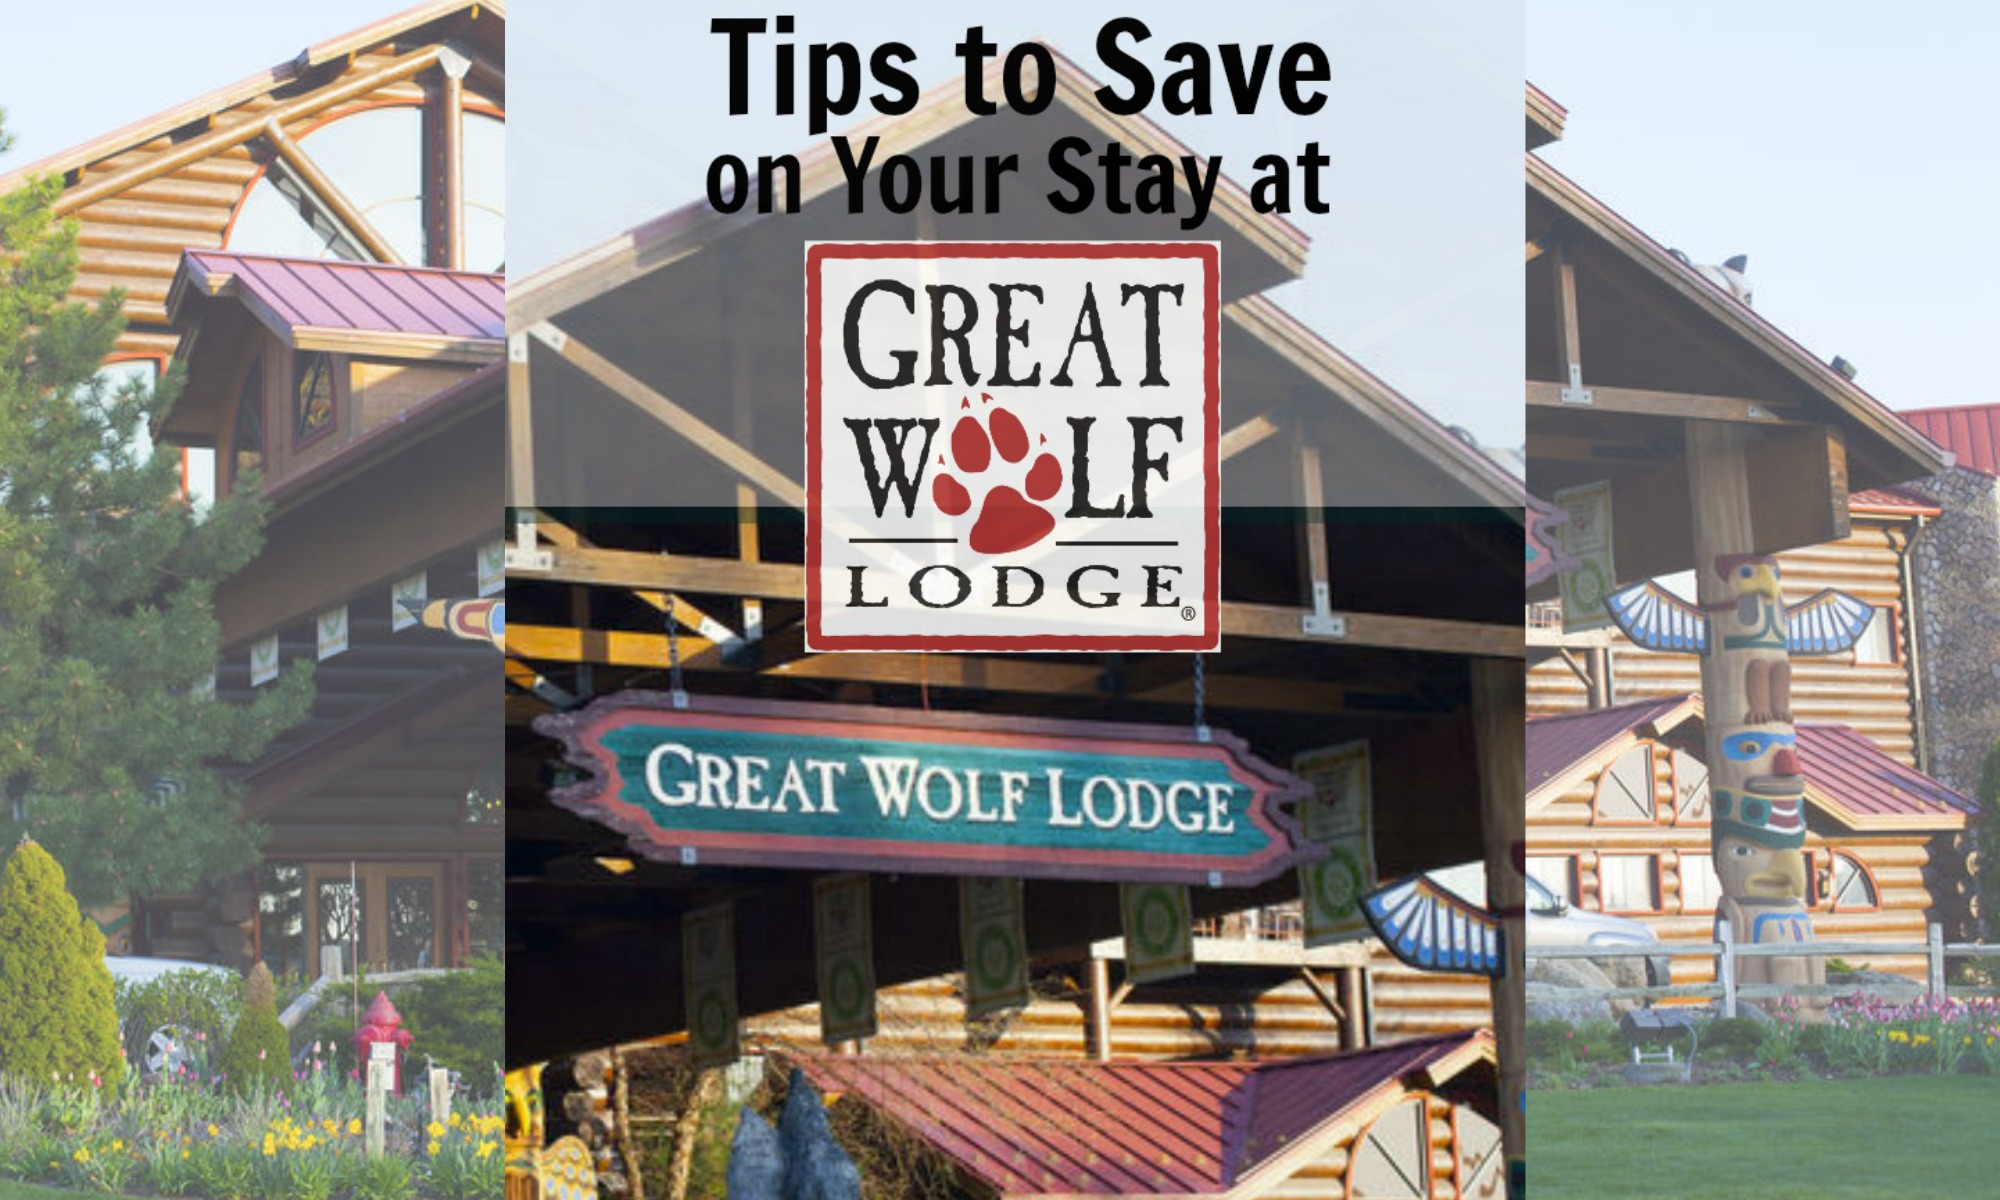 Great wolf lodge groupon everything you wanted to know